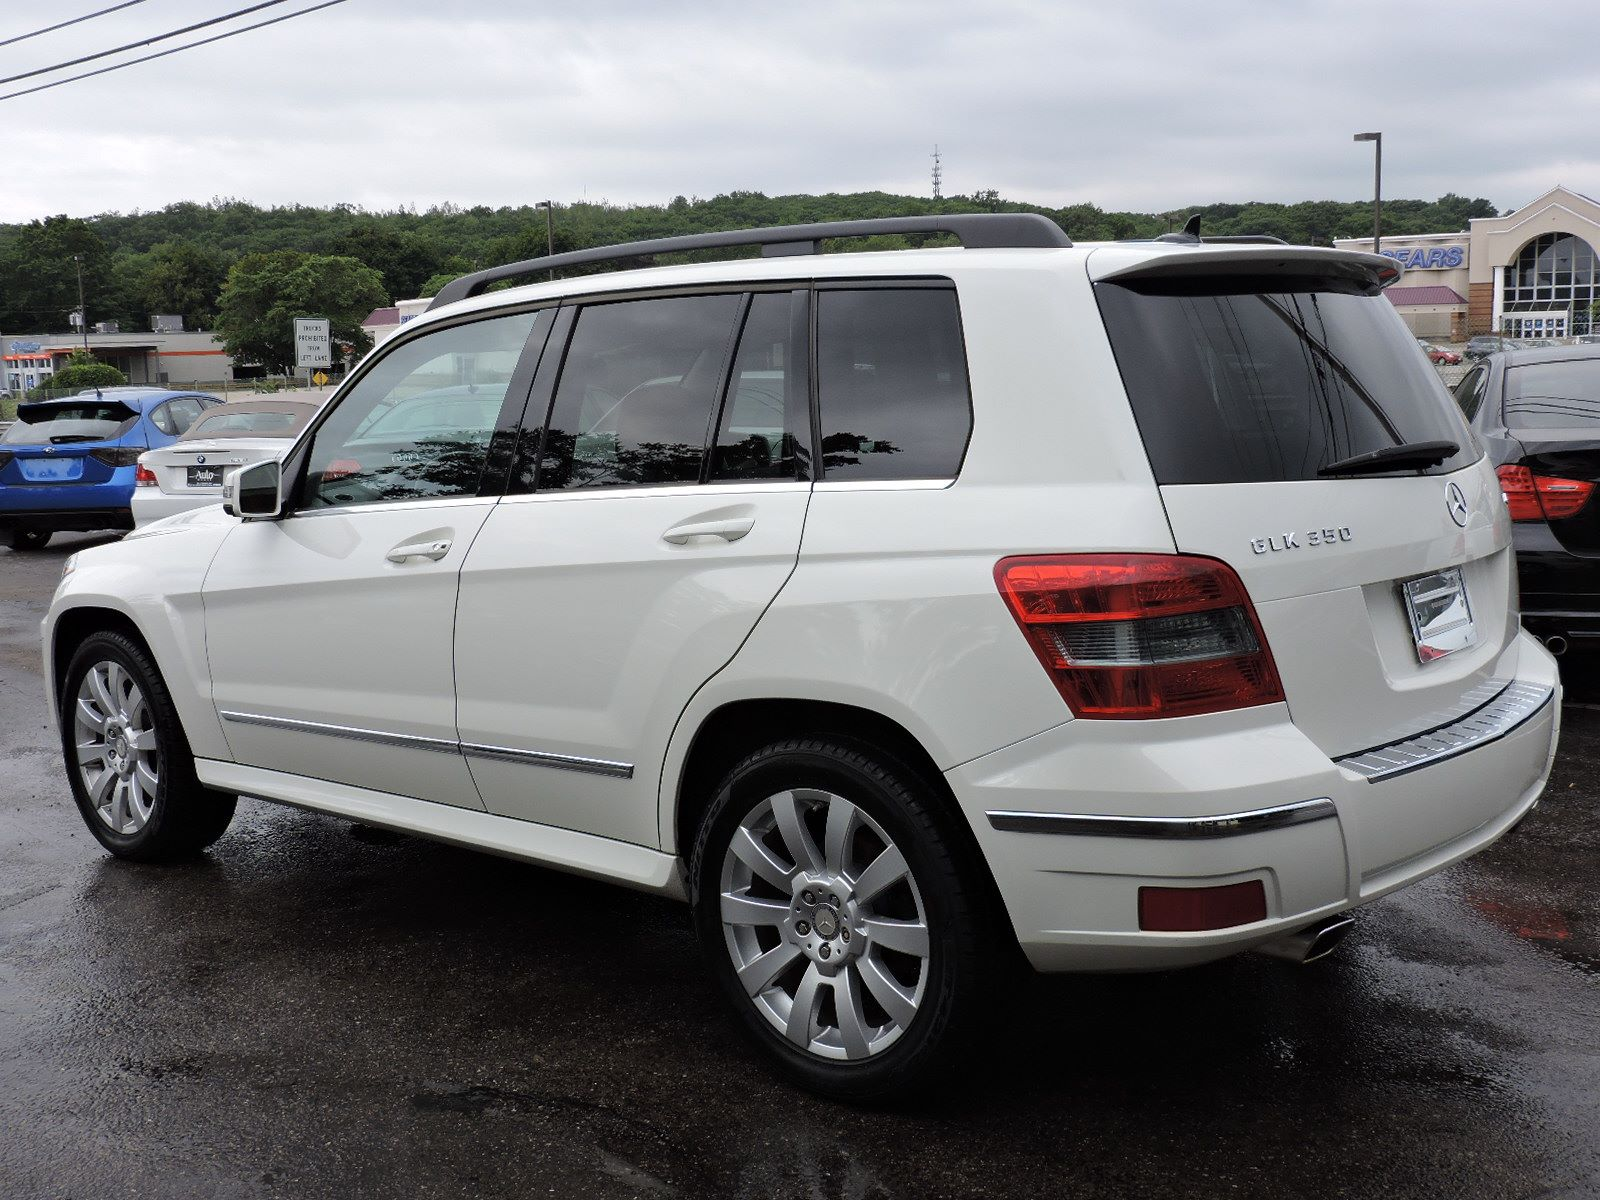 Permalink to Mercedes Benz Glk350 Price